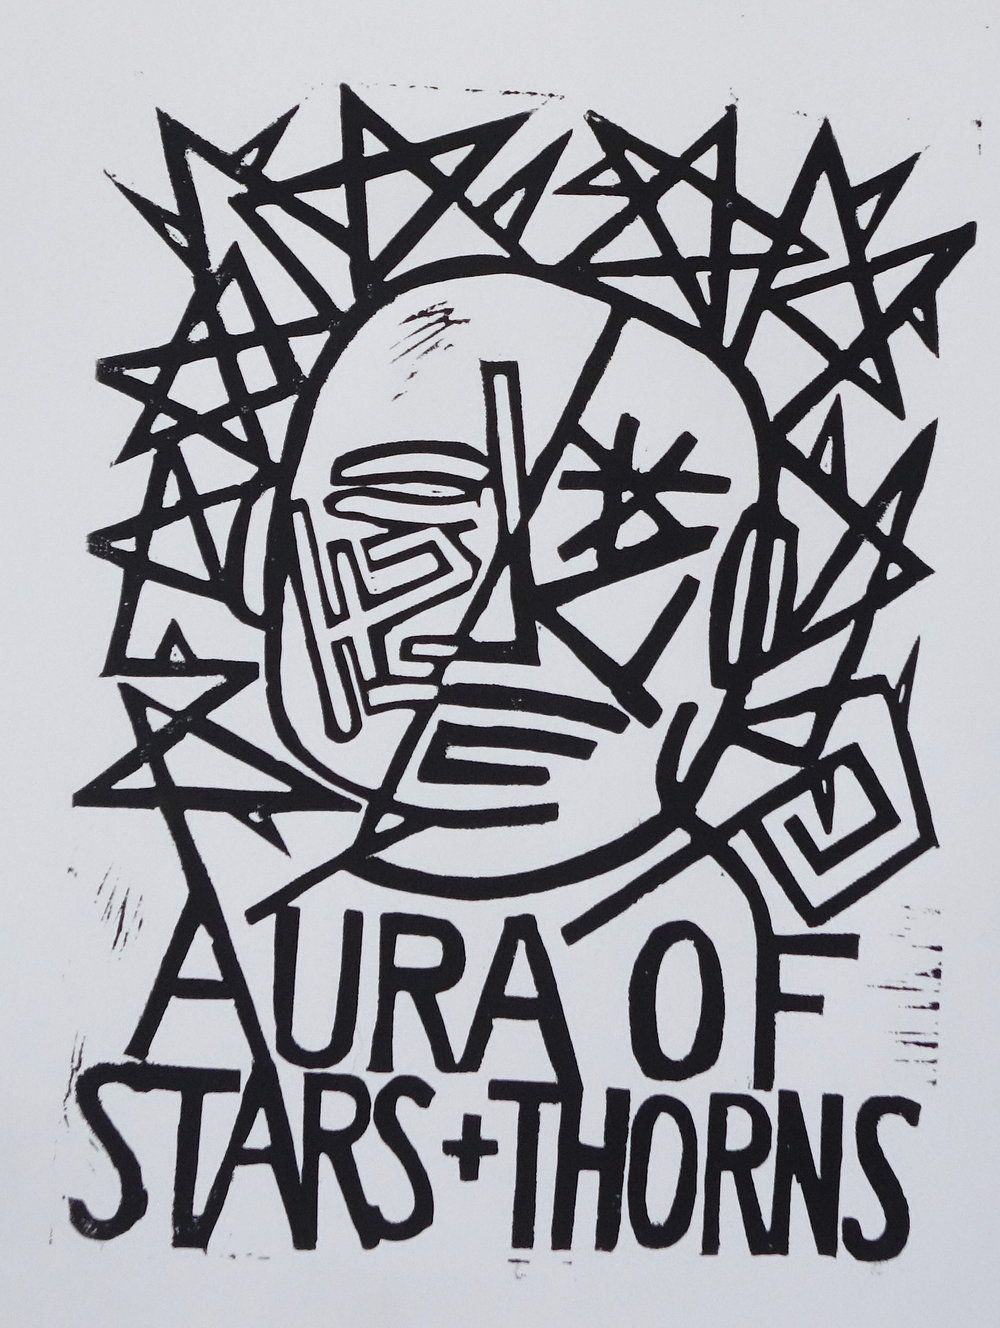 Aura of stars and thorns and